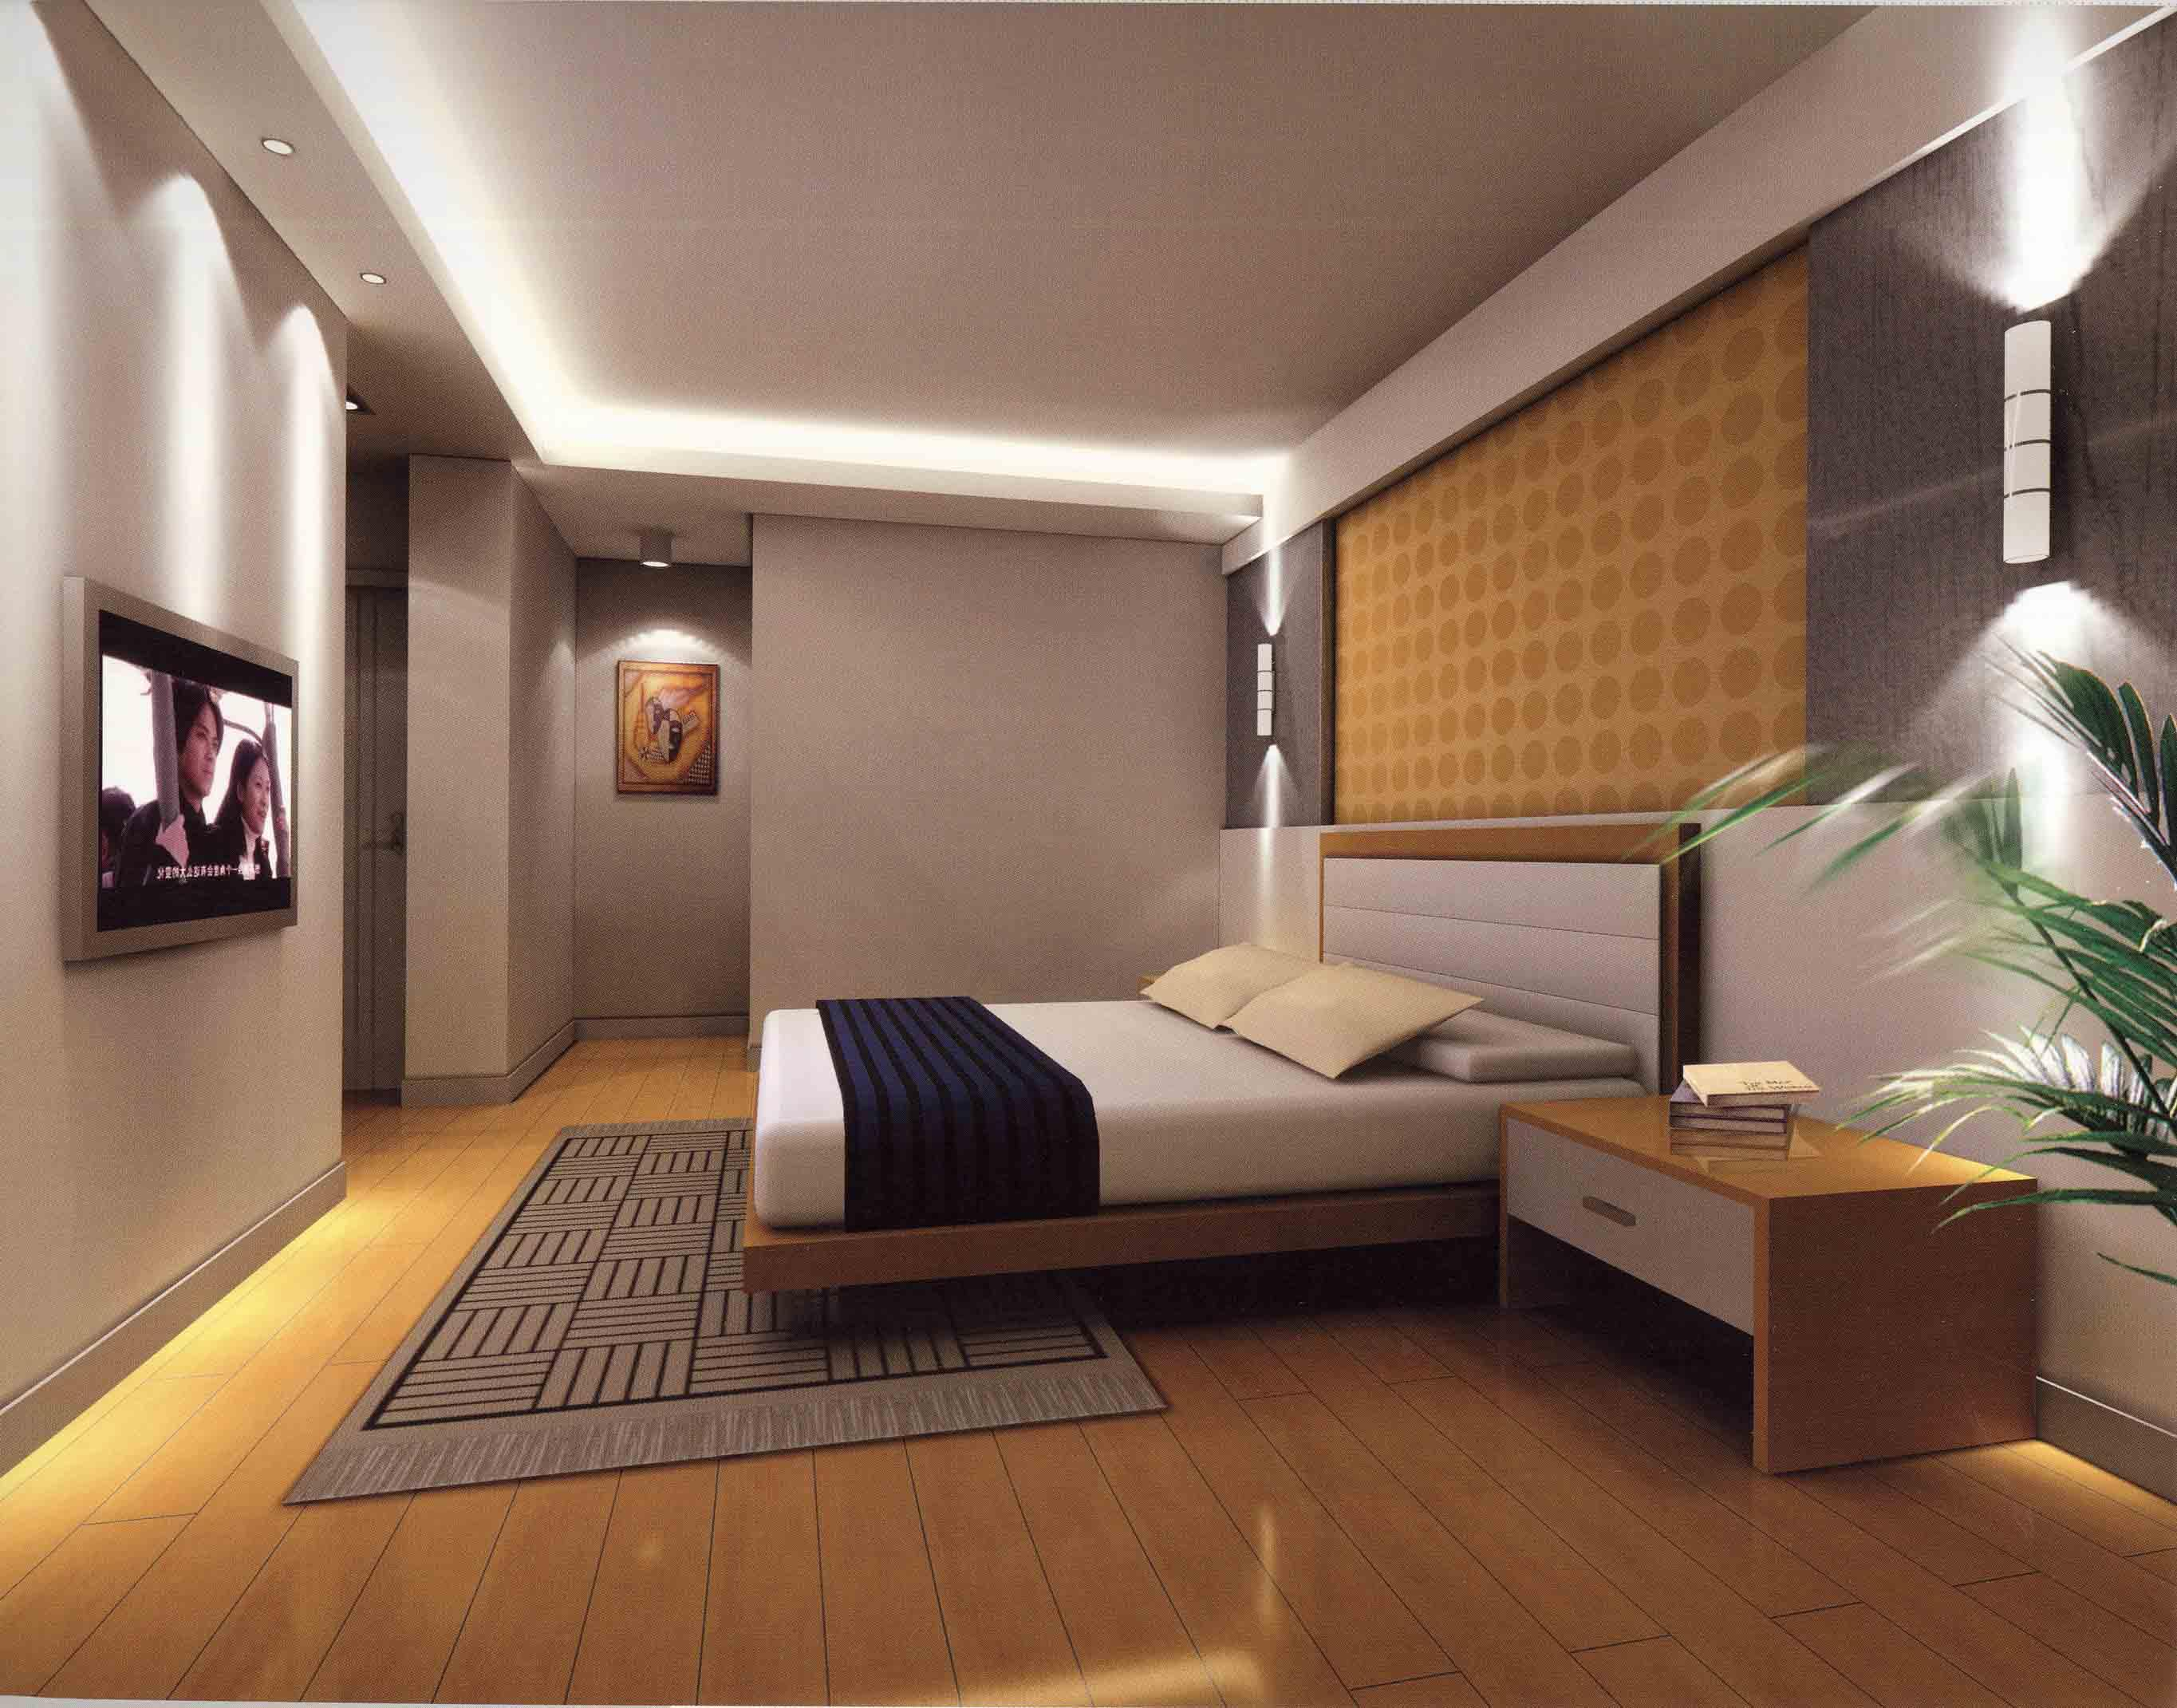 25 cool bedroom designs collection Master bedroom designs pictures